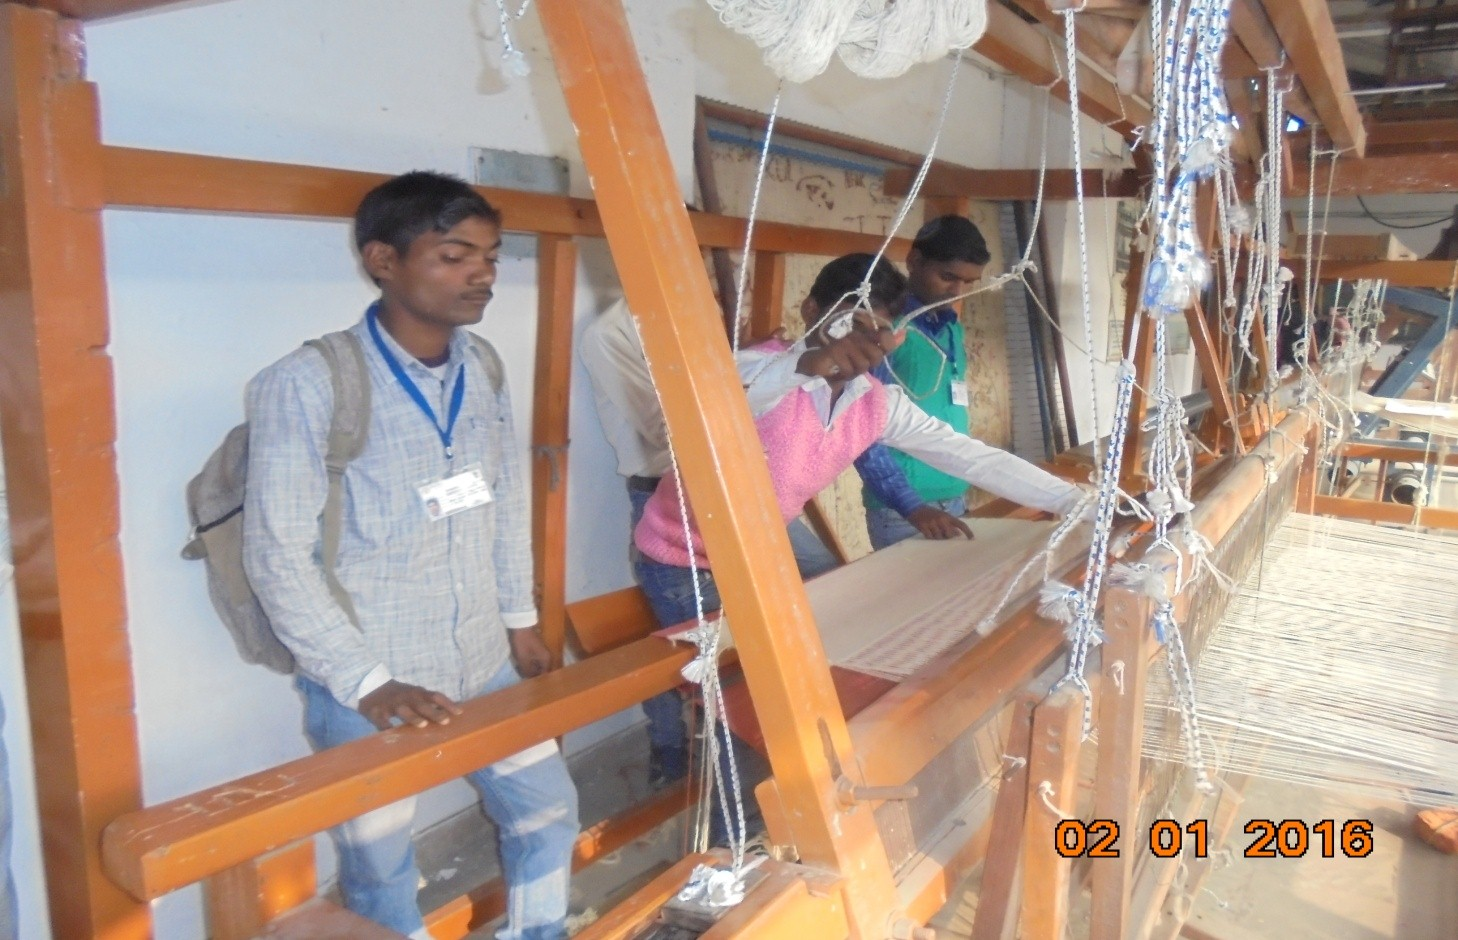 image of Integrated Design & Technical Development Project in Base Woven Textiles used for  Handicrafts held at IICT, Bhadohi  exclusively for SC category Artisans from 30.10.2015 to 08.02.2016.